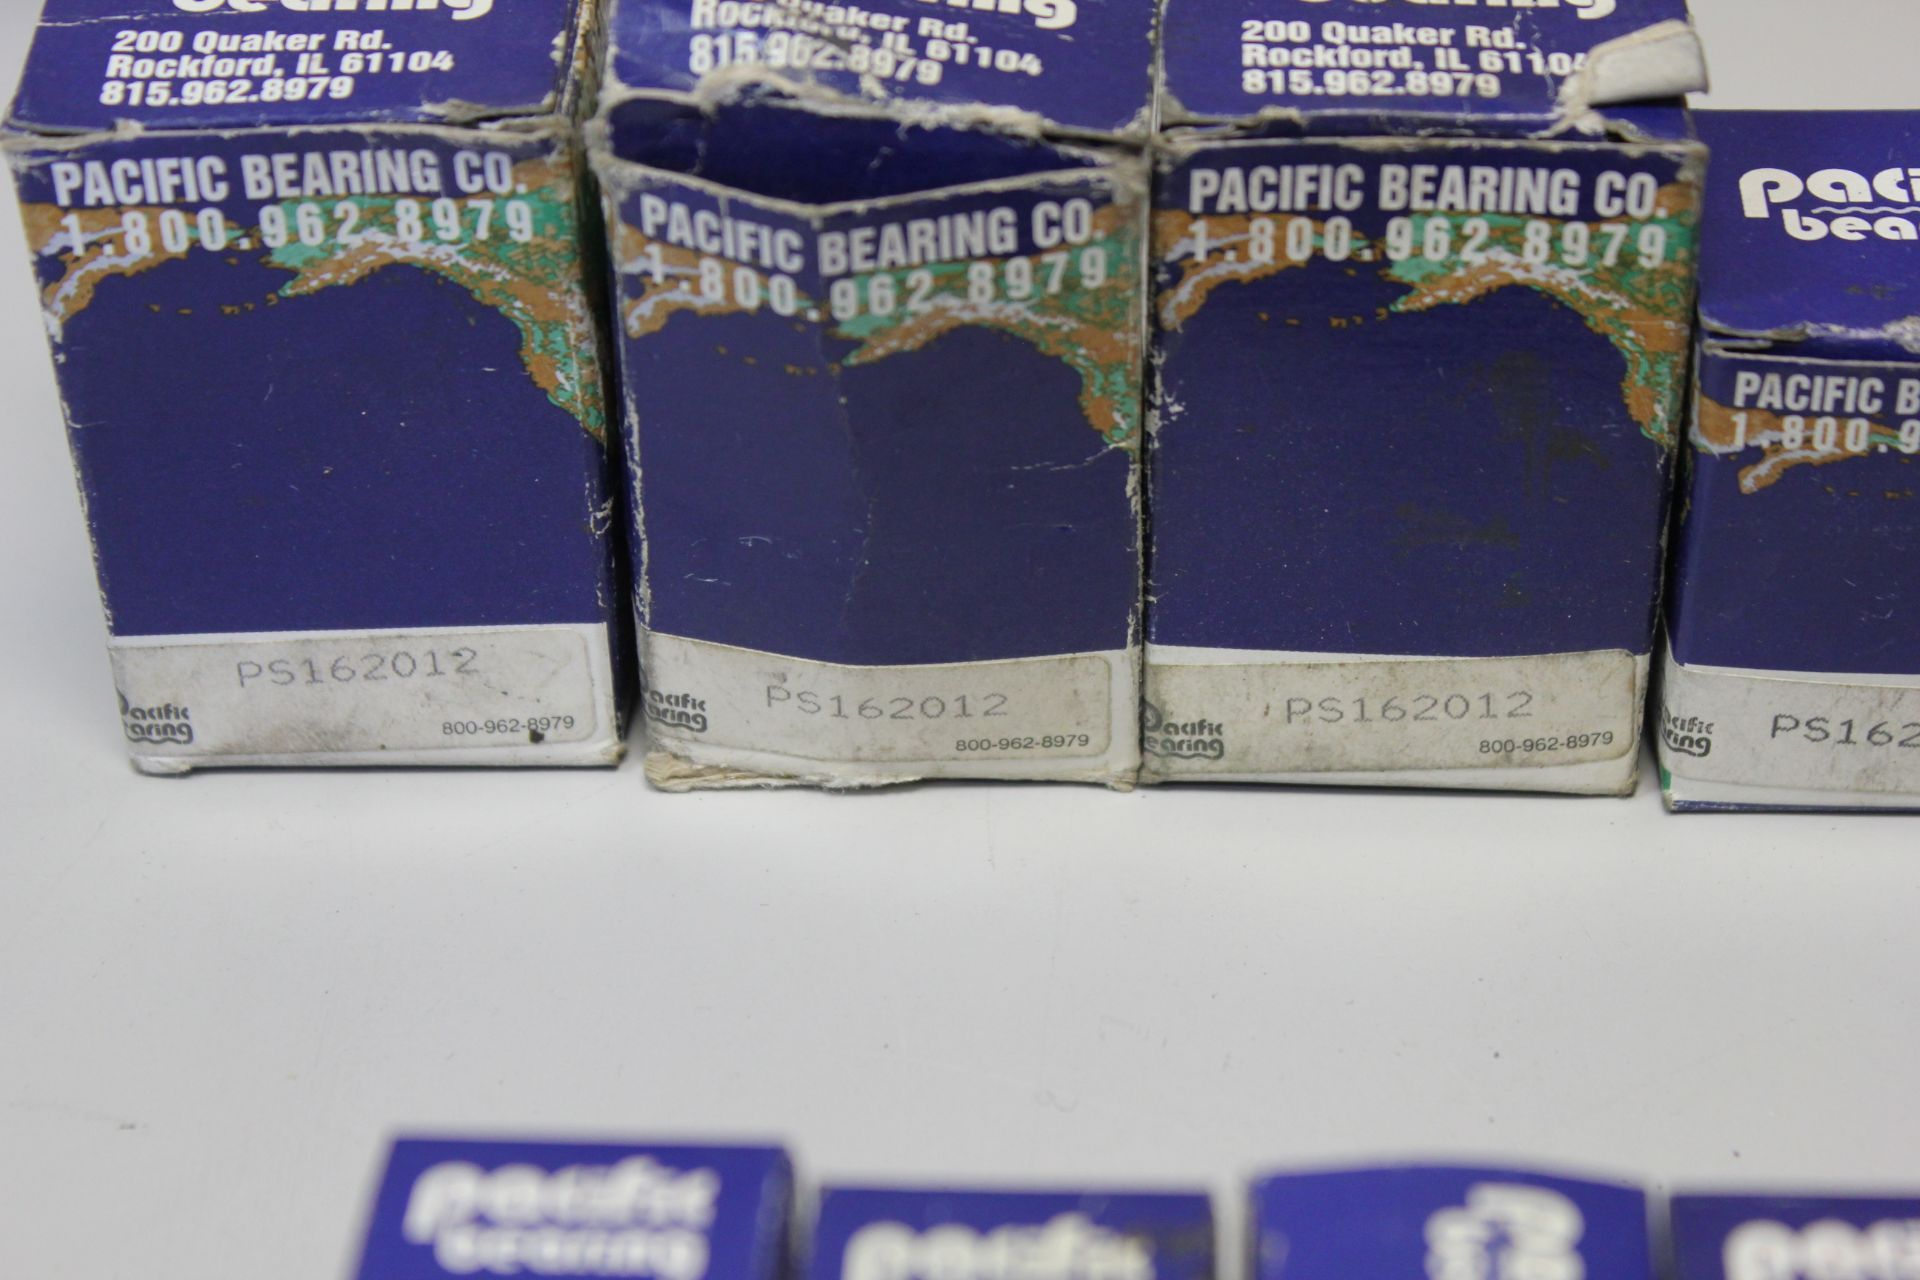 LOT OF NEW PACIFIC ROLLER BEARINGS - Image 6 of 8